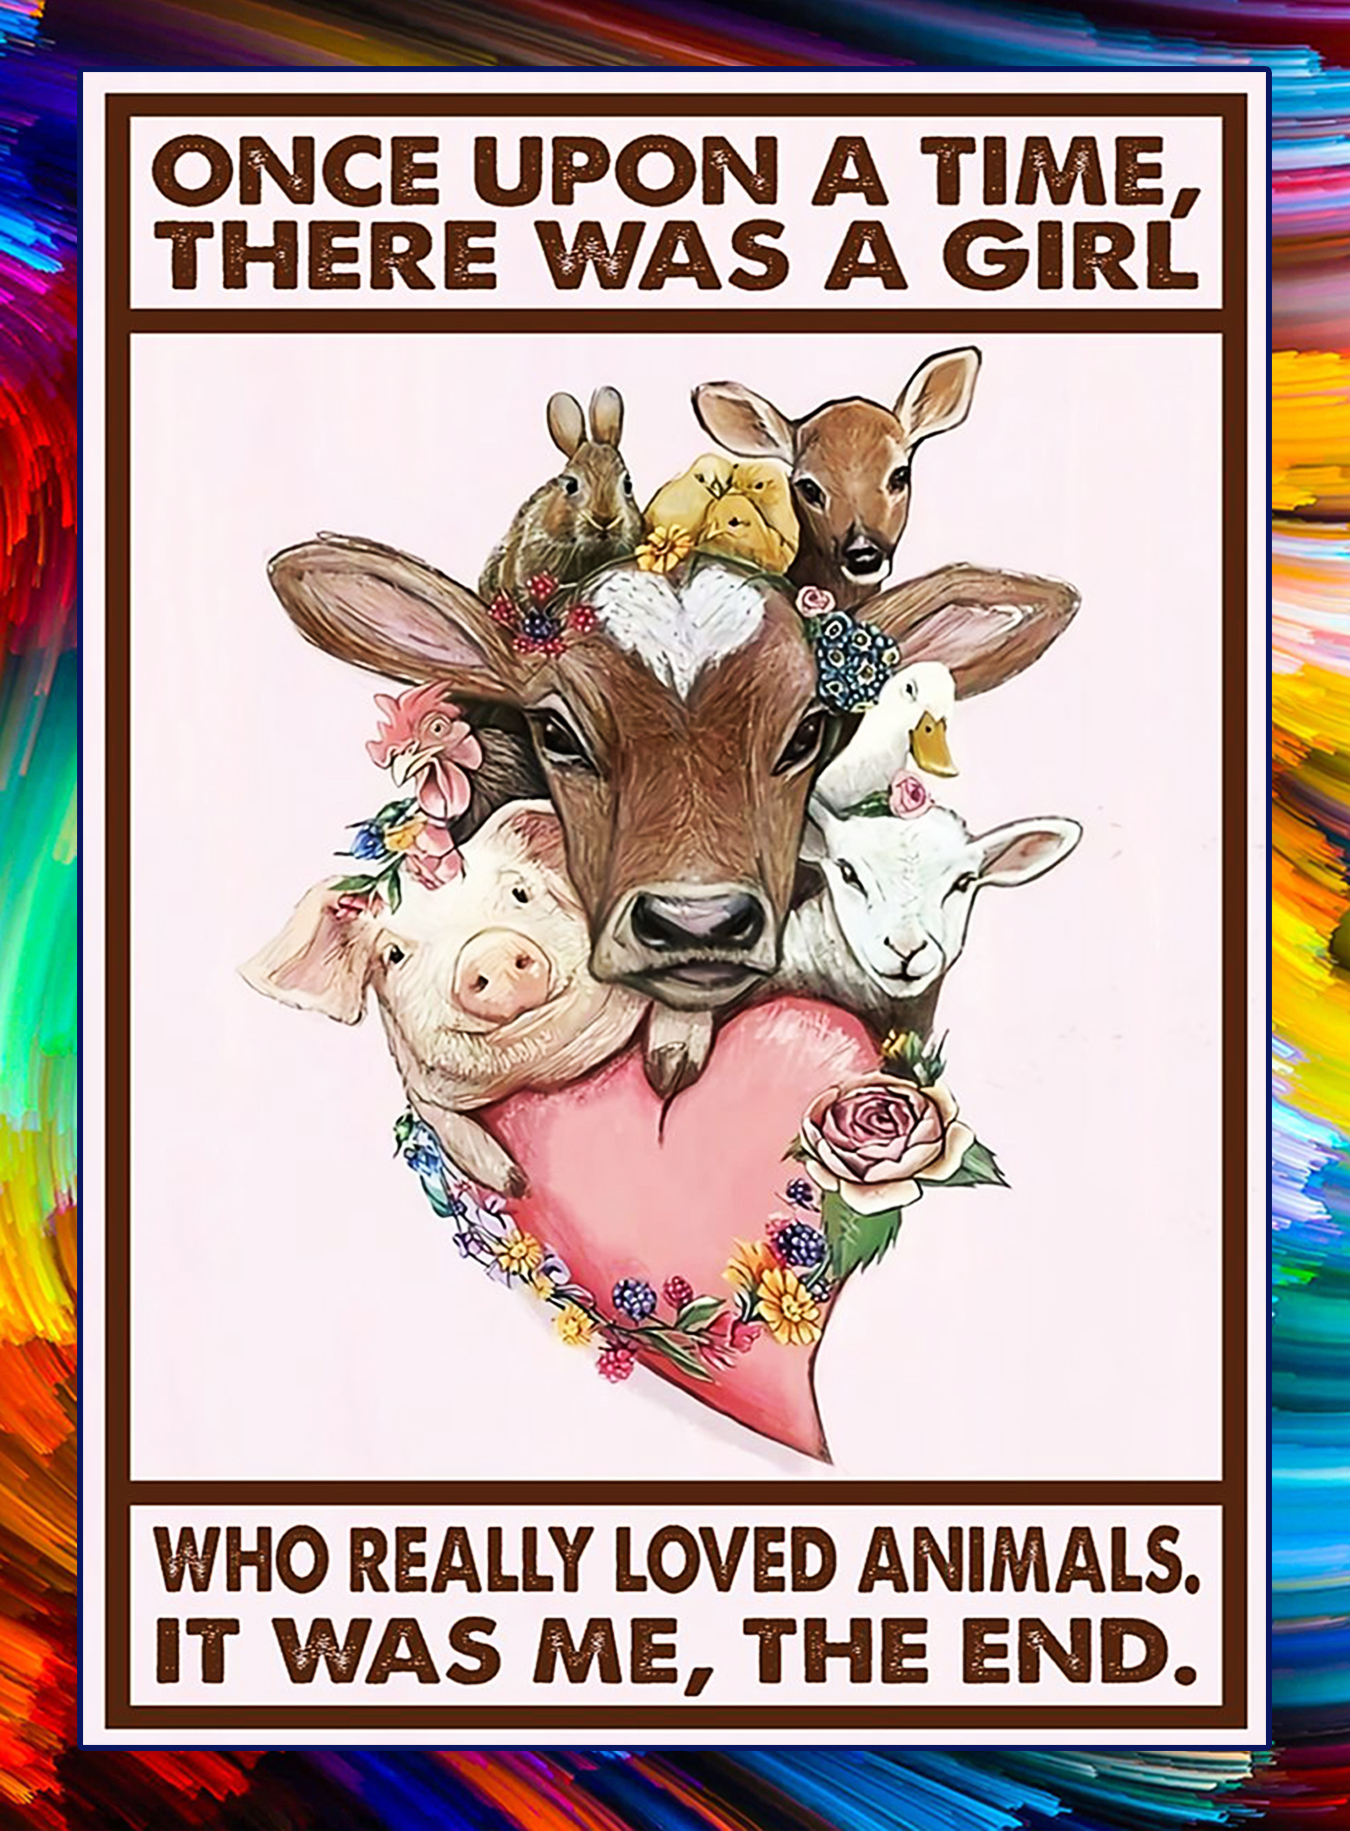 Vegan once upon a time there was a girl who really loved animals poster - A3